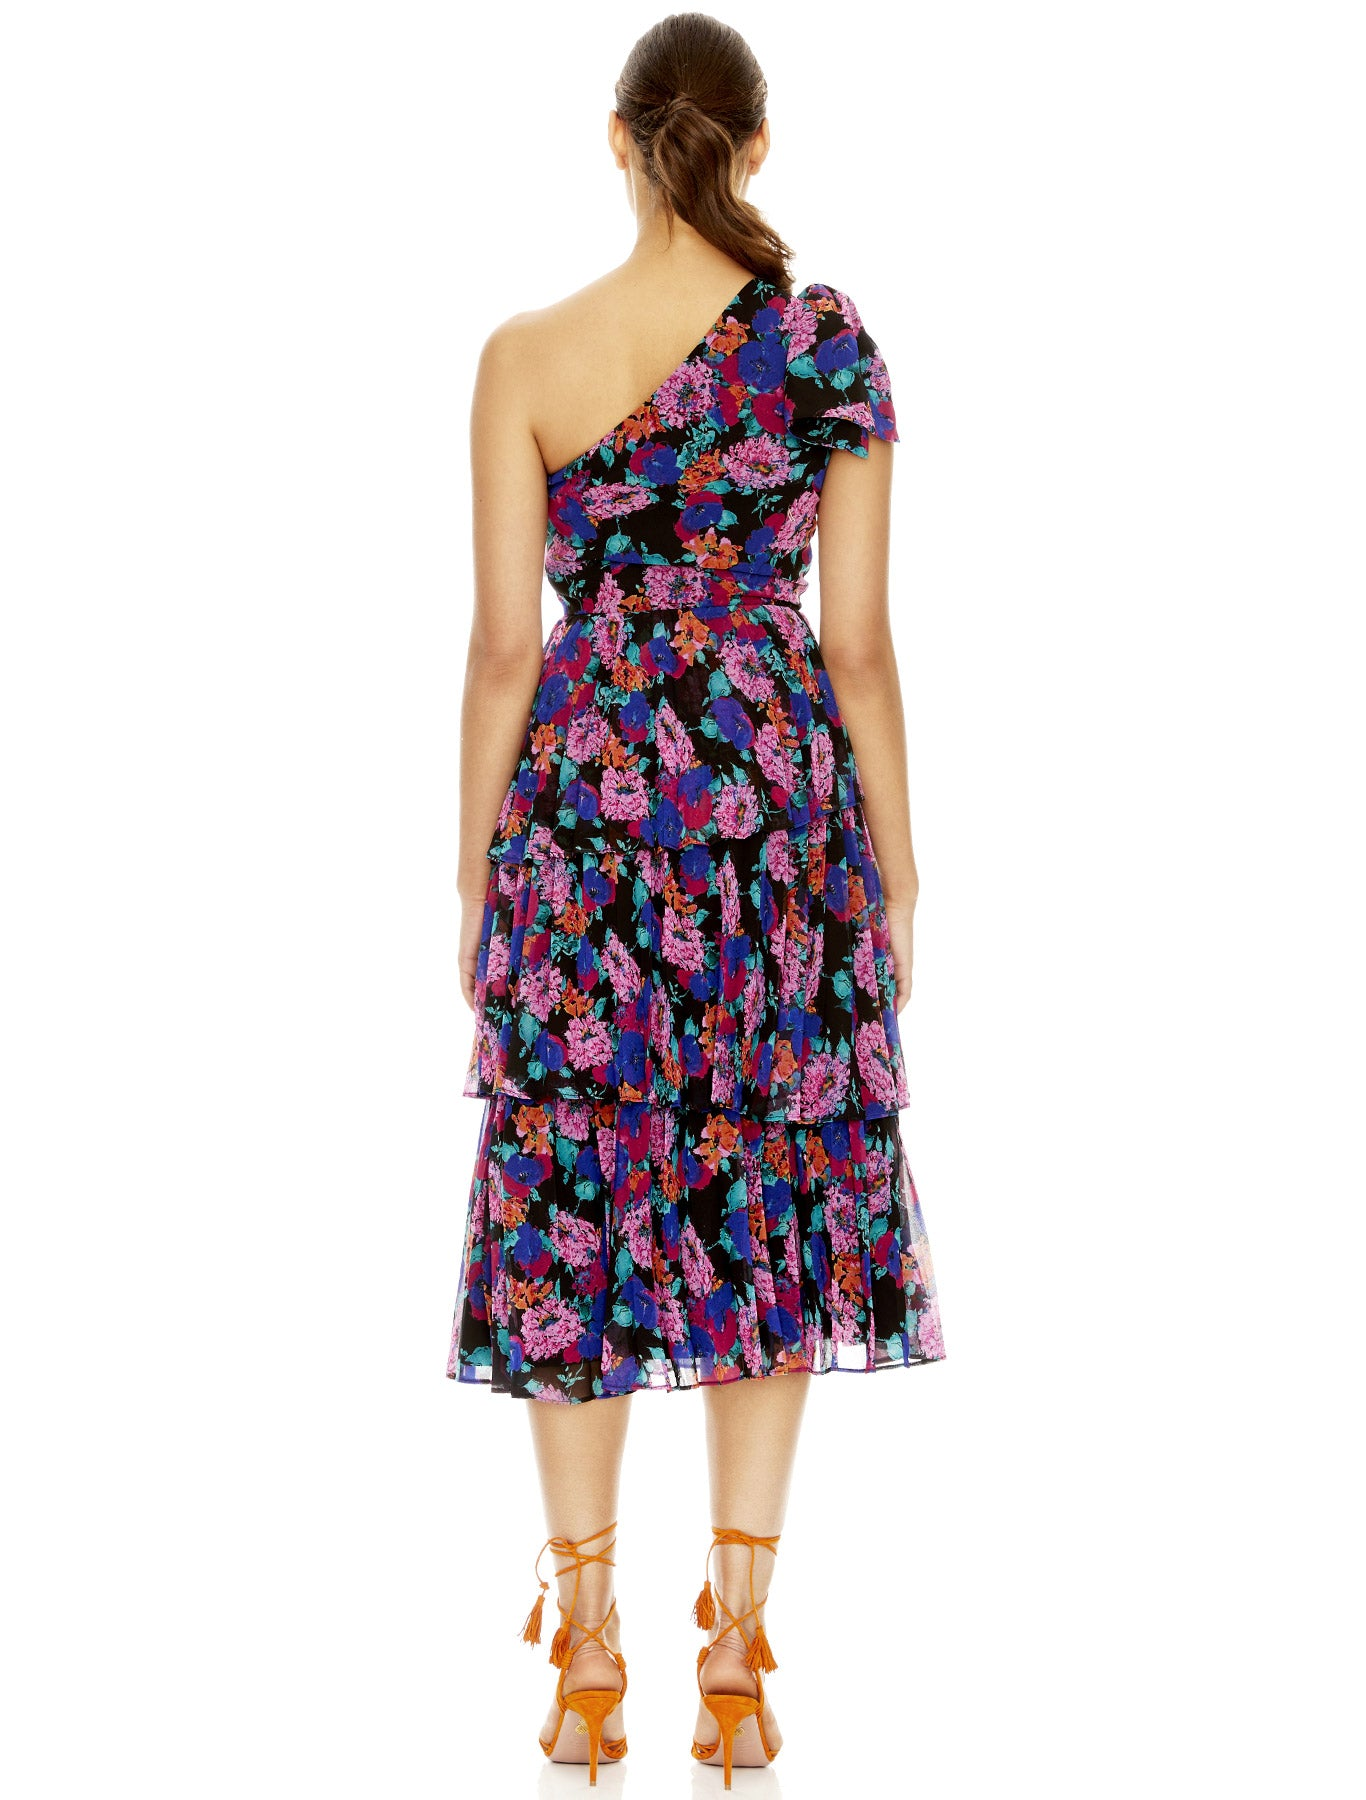 SWEET TALK MIDI DRESS